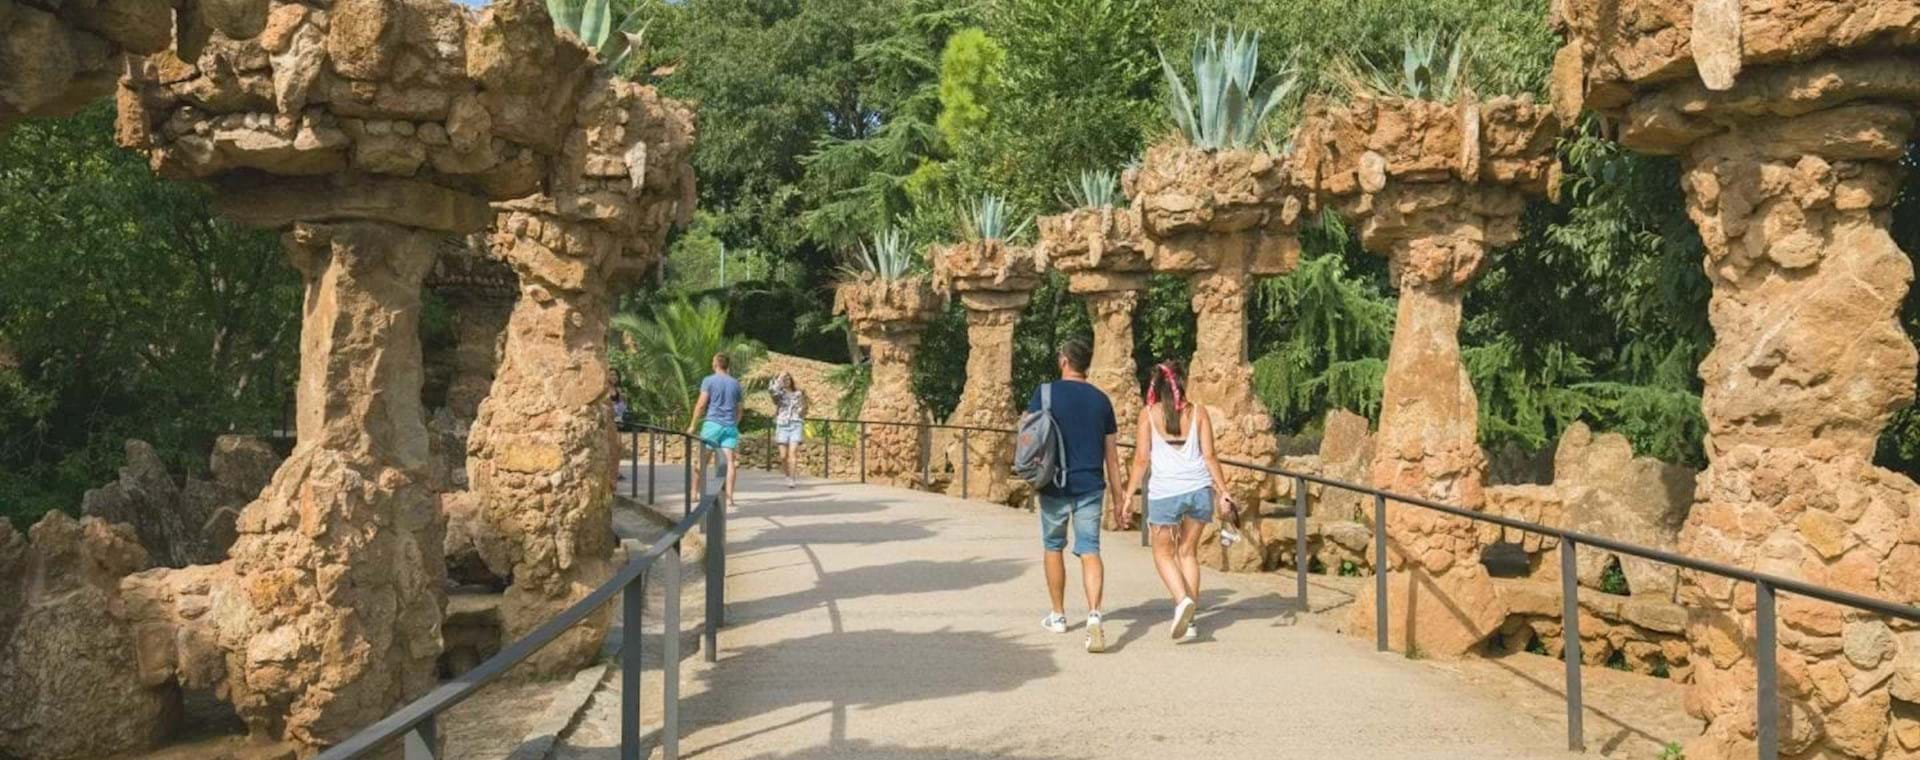 Park Güell Express Tour with Transport from City Center